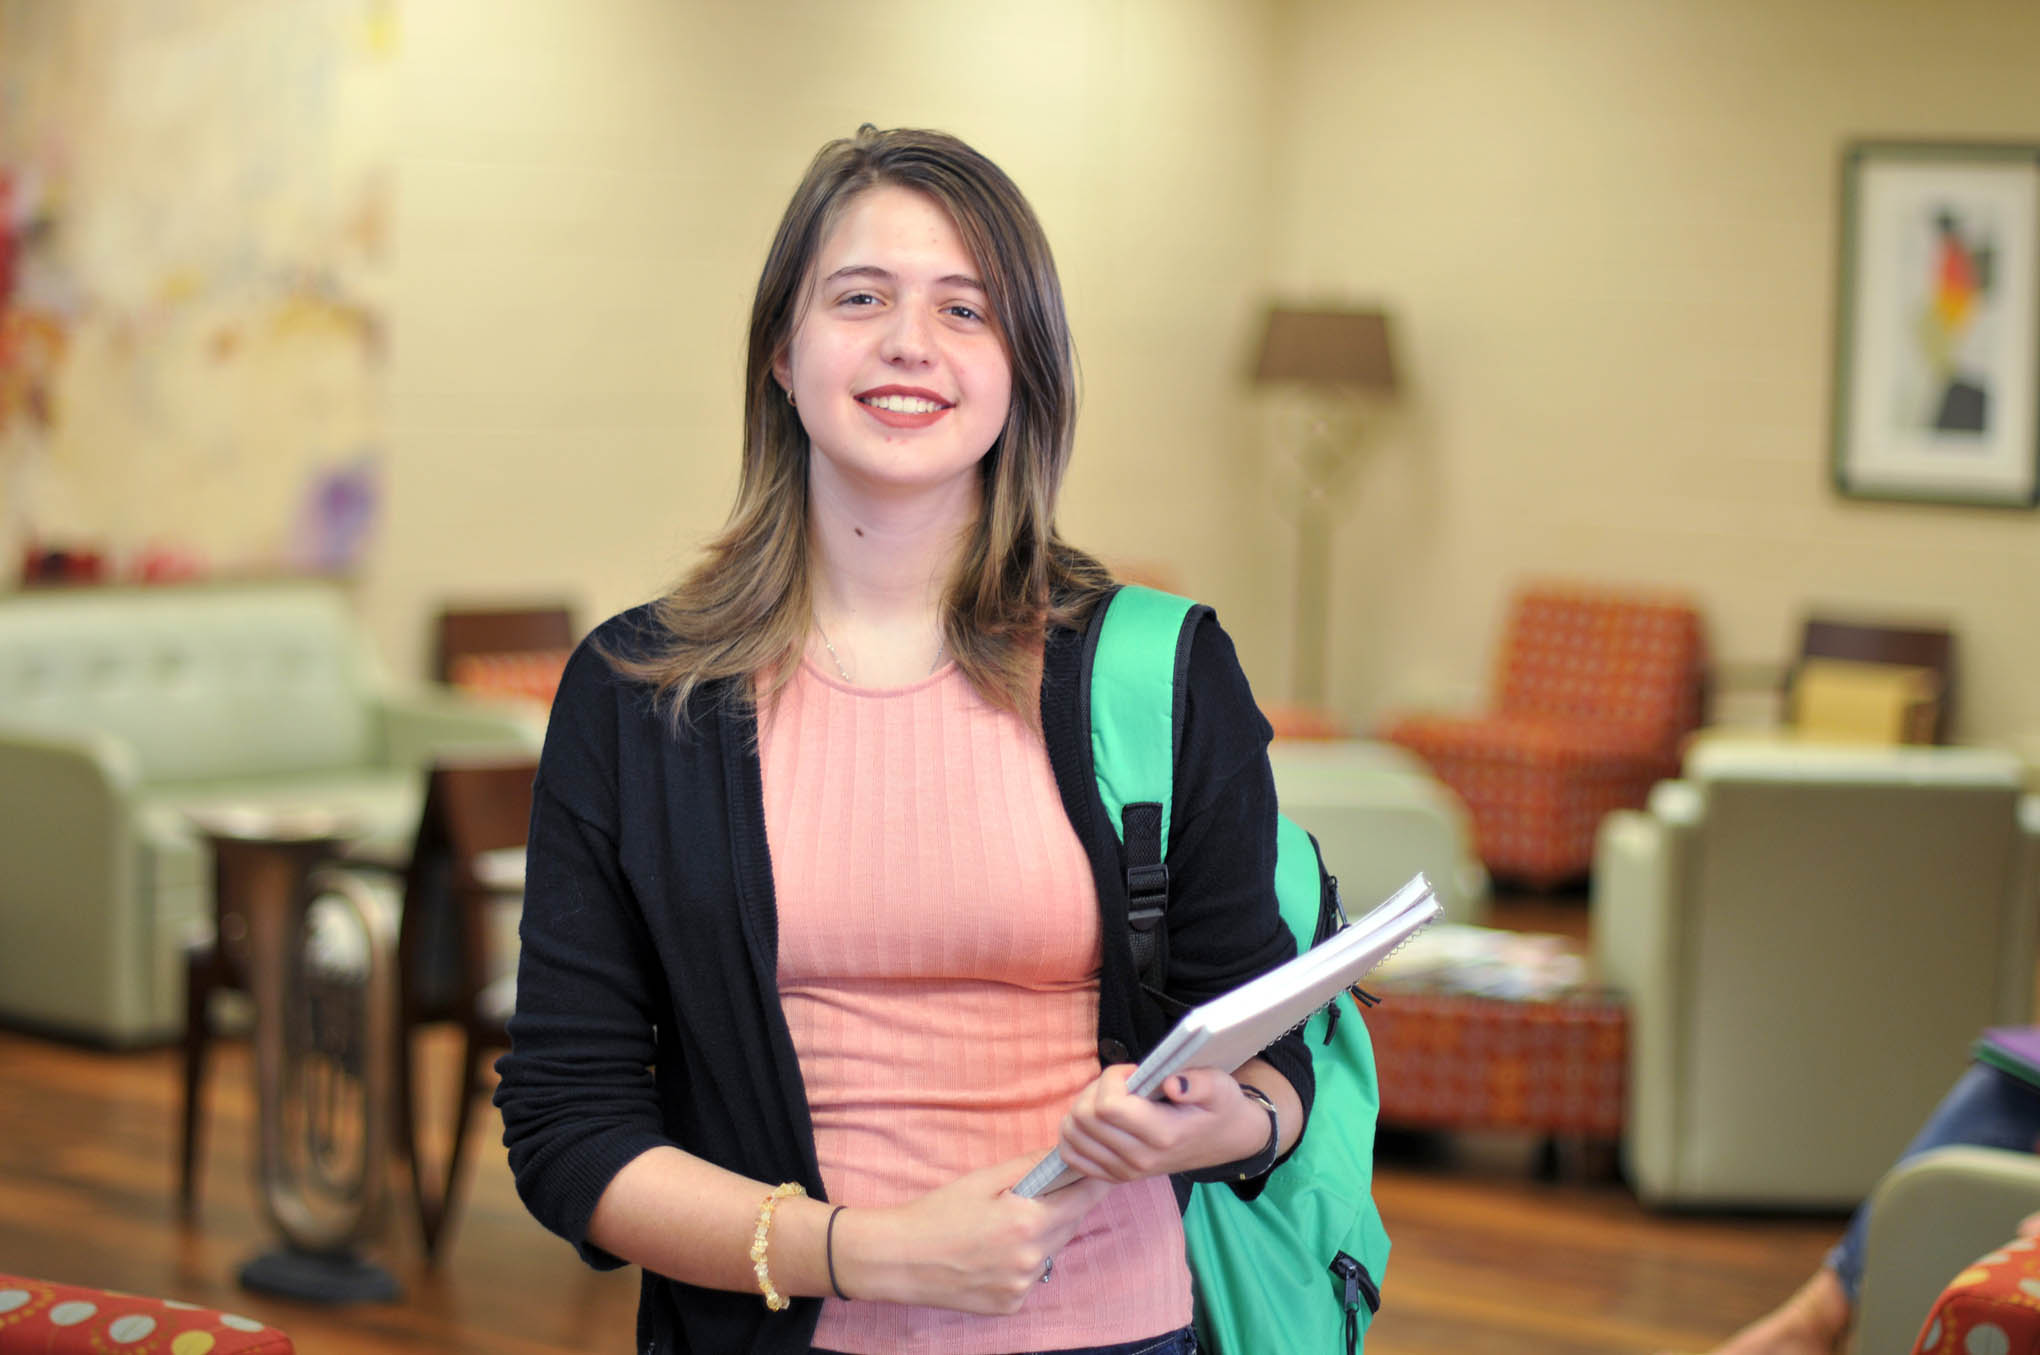 Click to enlarge,  Amber England is among the students participating in the Lee County Promise program. Lee County Promise is a local initiative supported through county and private funding that guarantees up to two years of free in-state college tuition to public school graduates who meet eligibility standards.